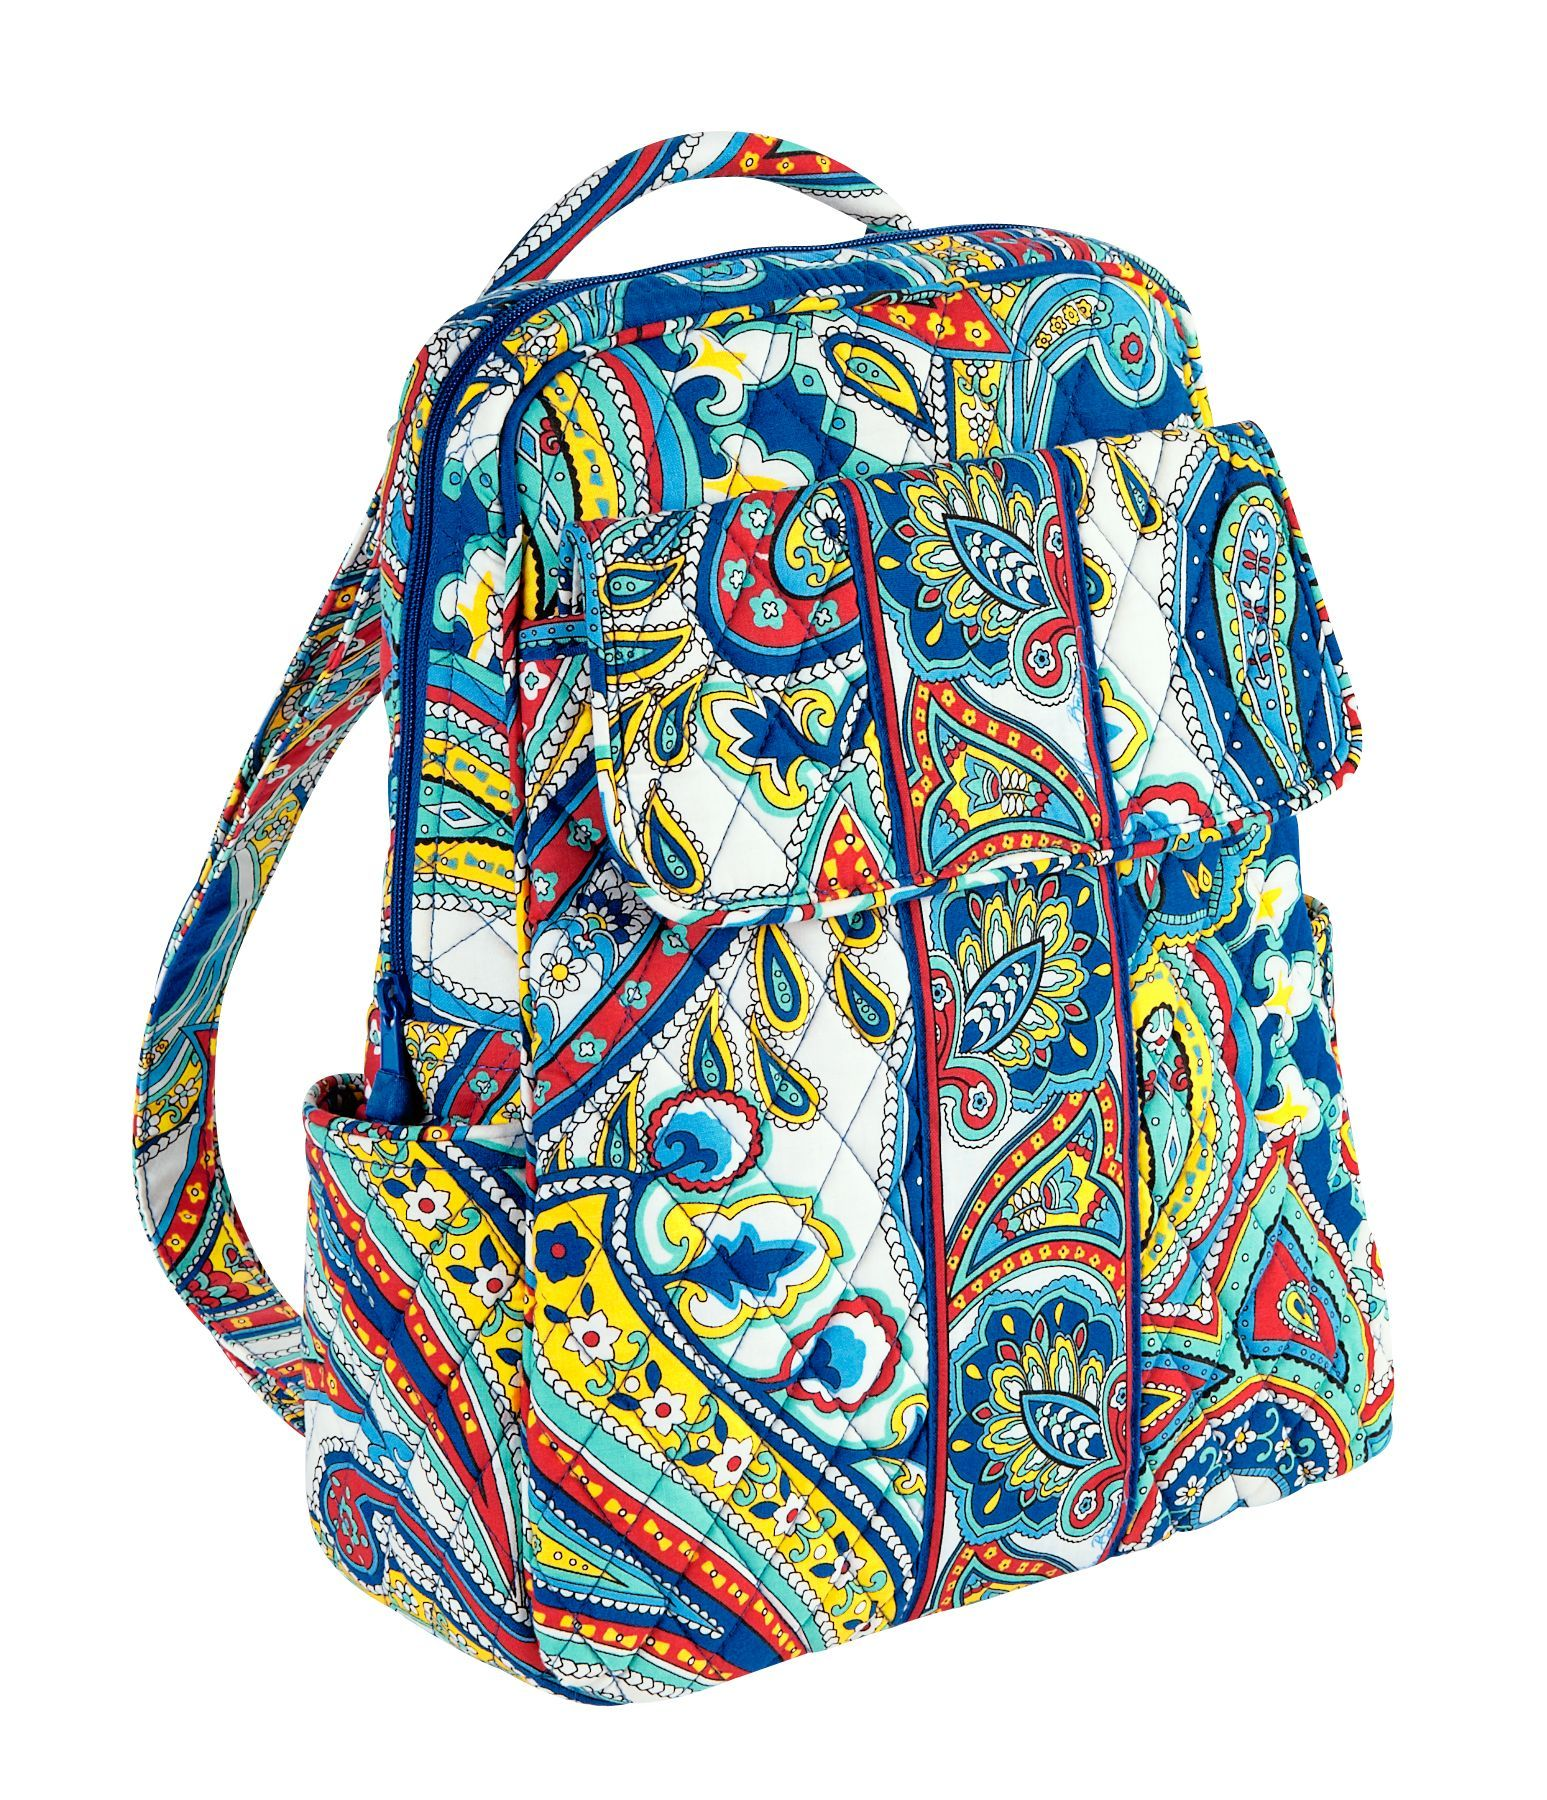 Vera Bradley Backpack in Marina Paisley. Perfect for an island trip...